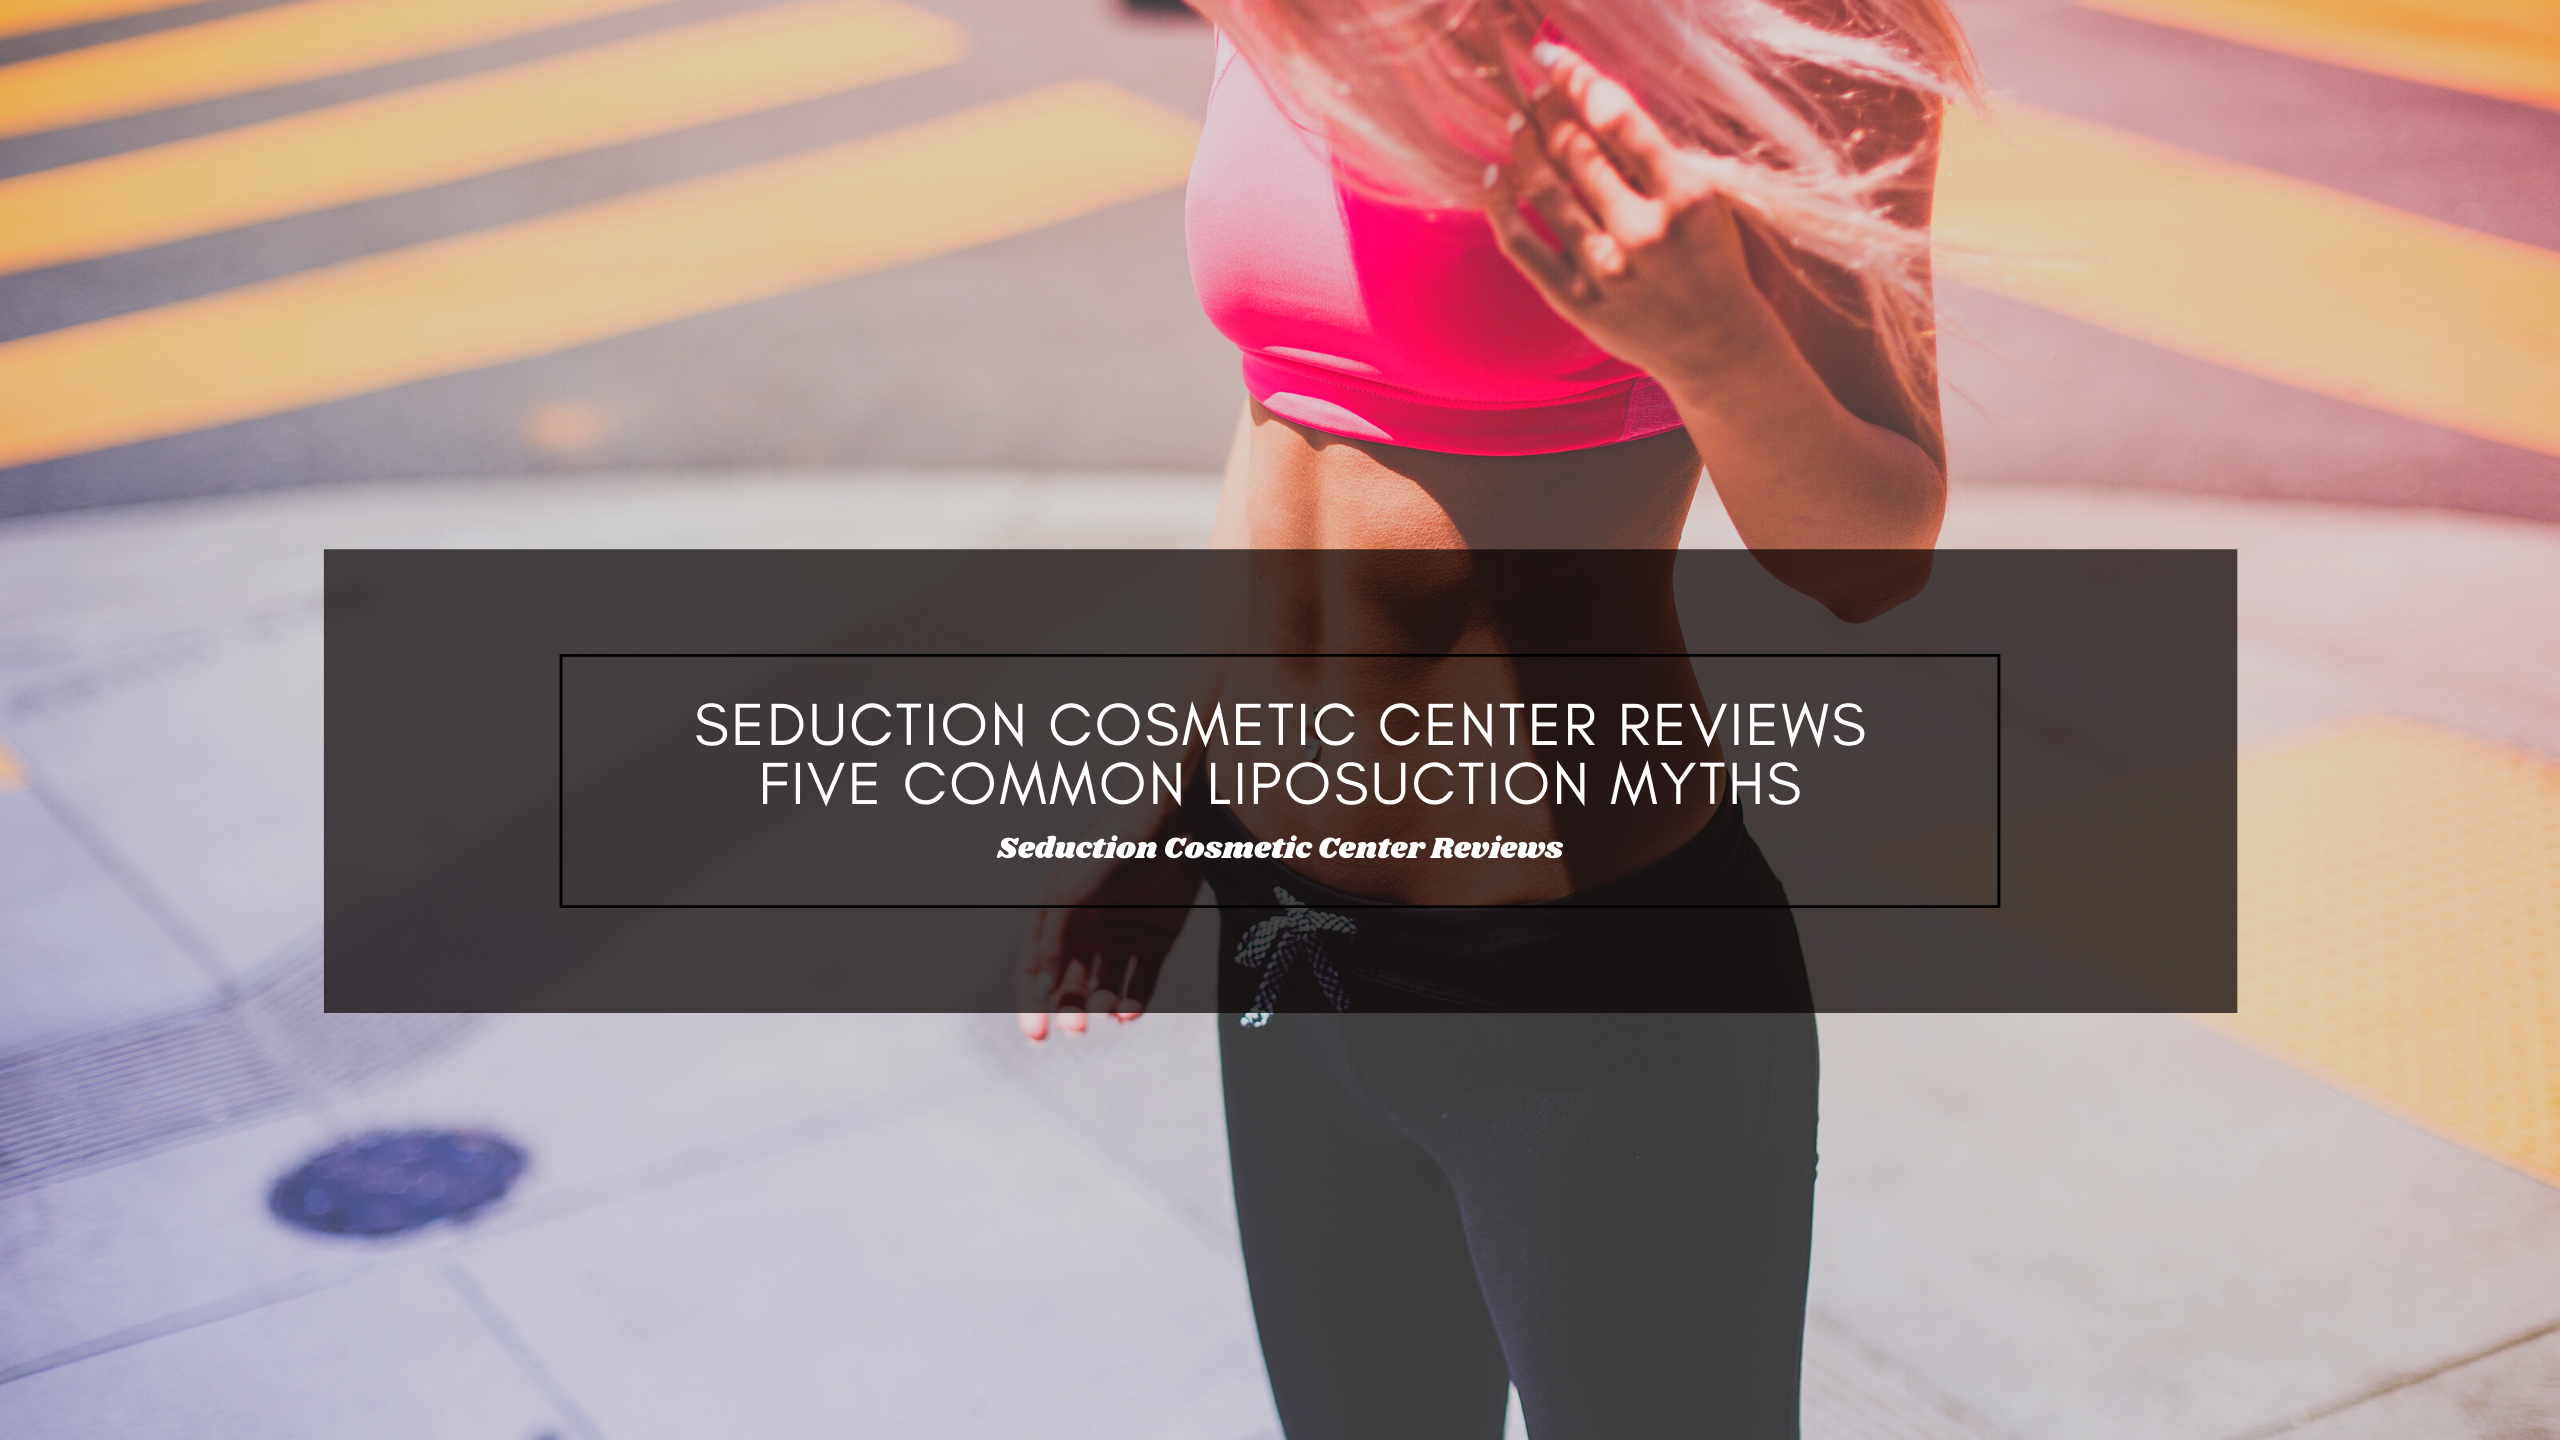 Seduction Cosmetic Center Reviews